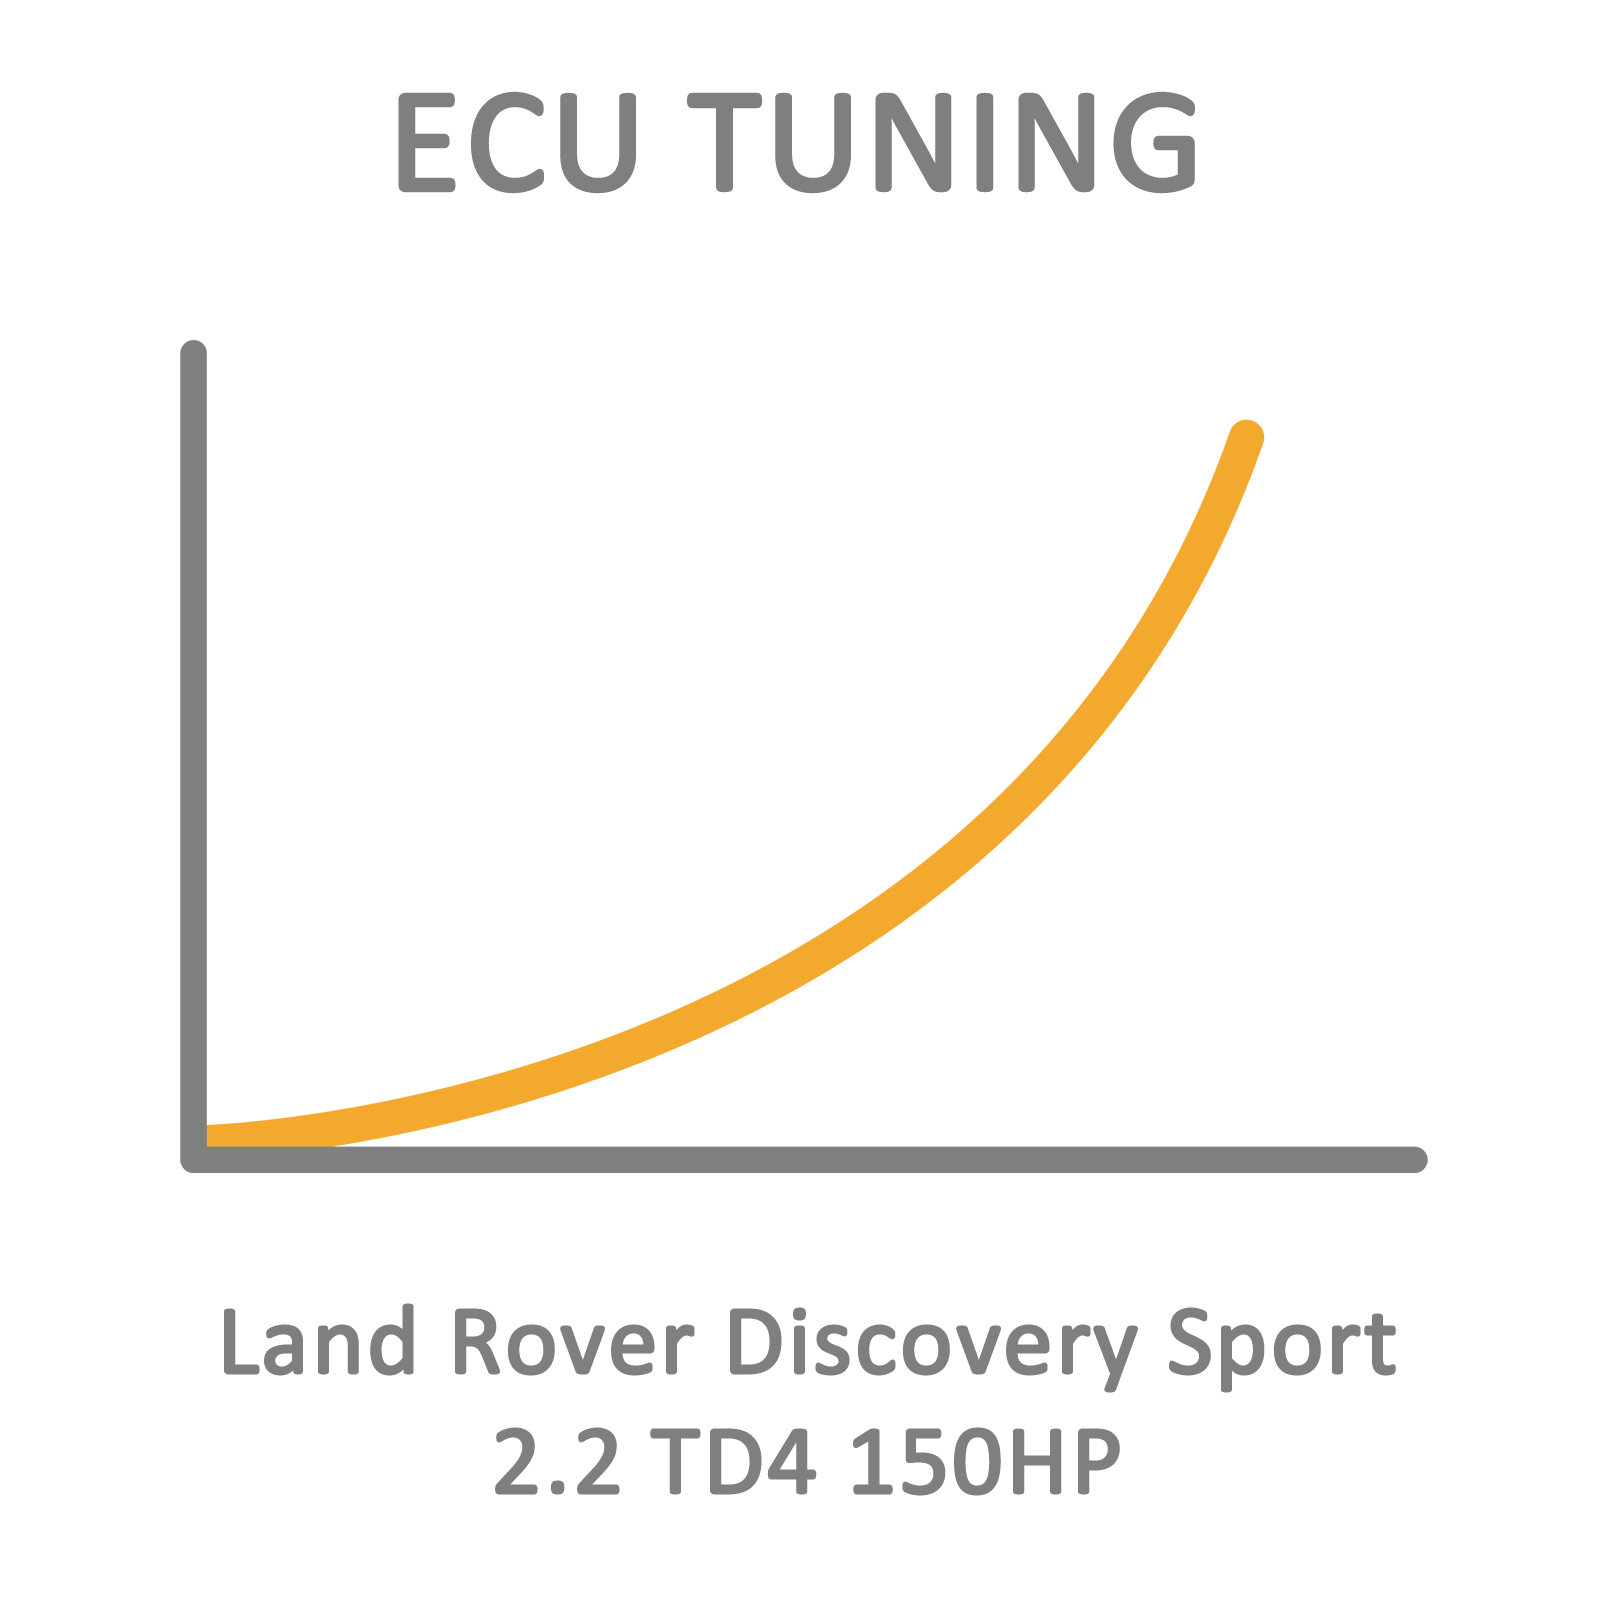 Land Rover Discovery Sport 2.2 TD4 150HP ECU Tuning